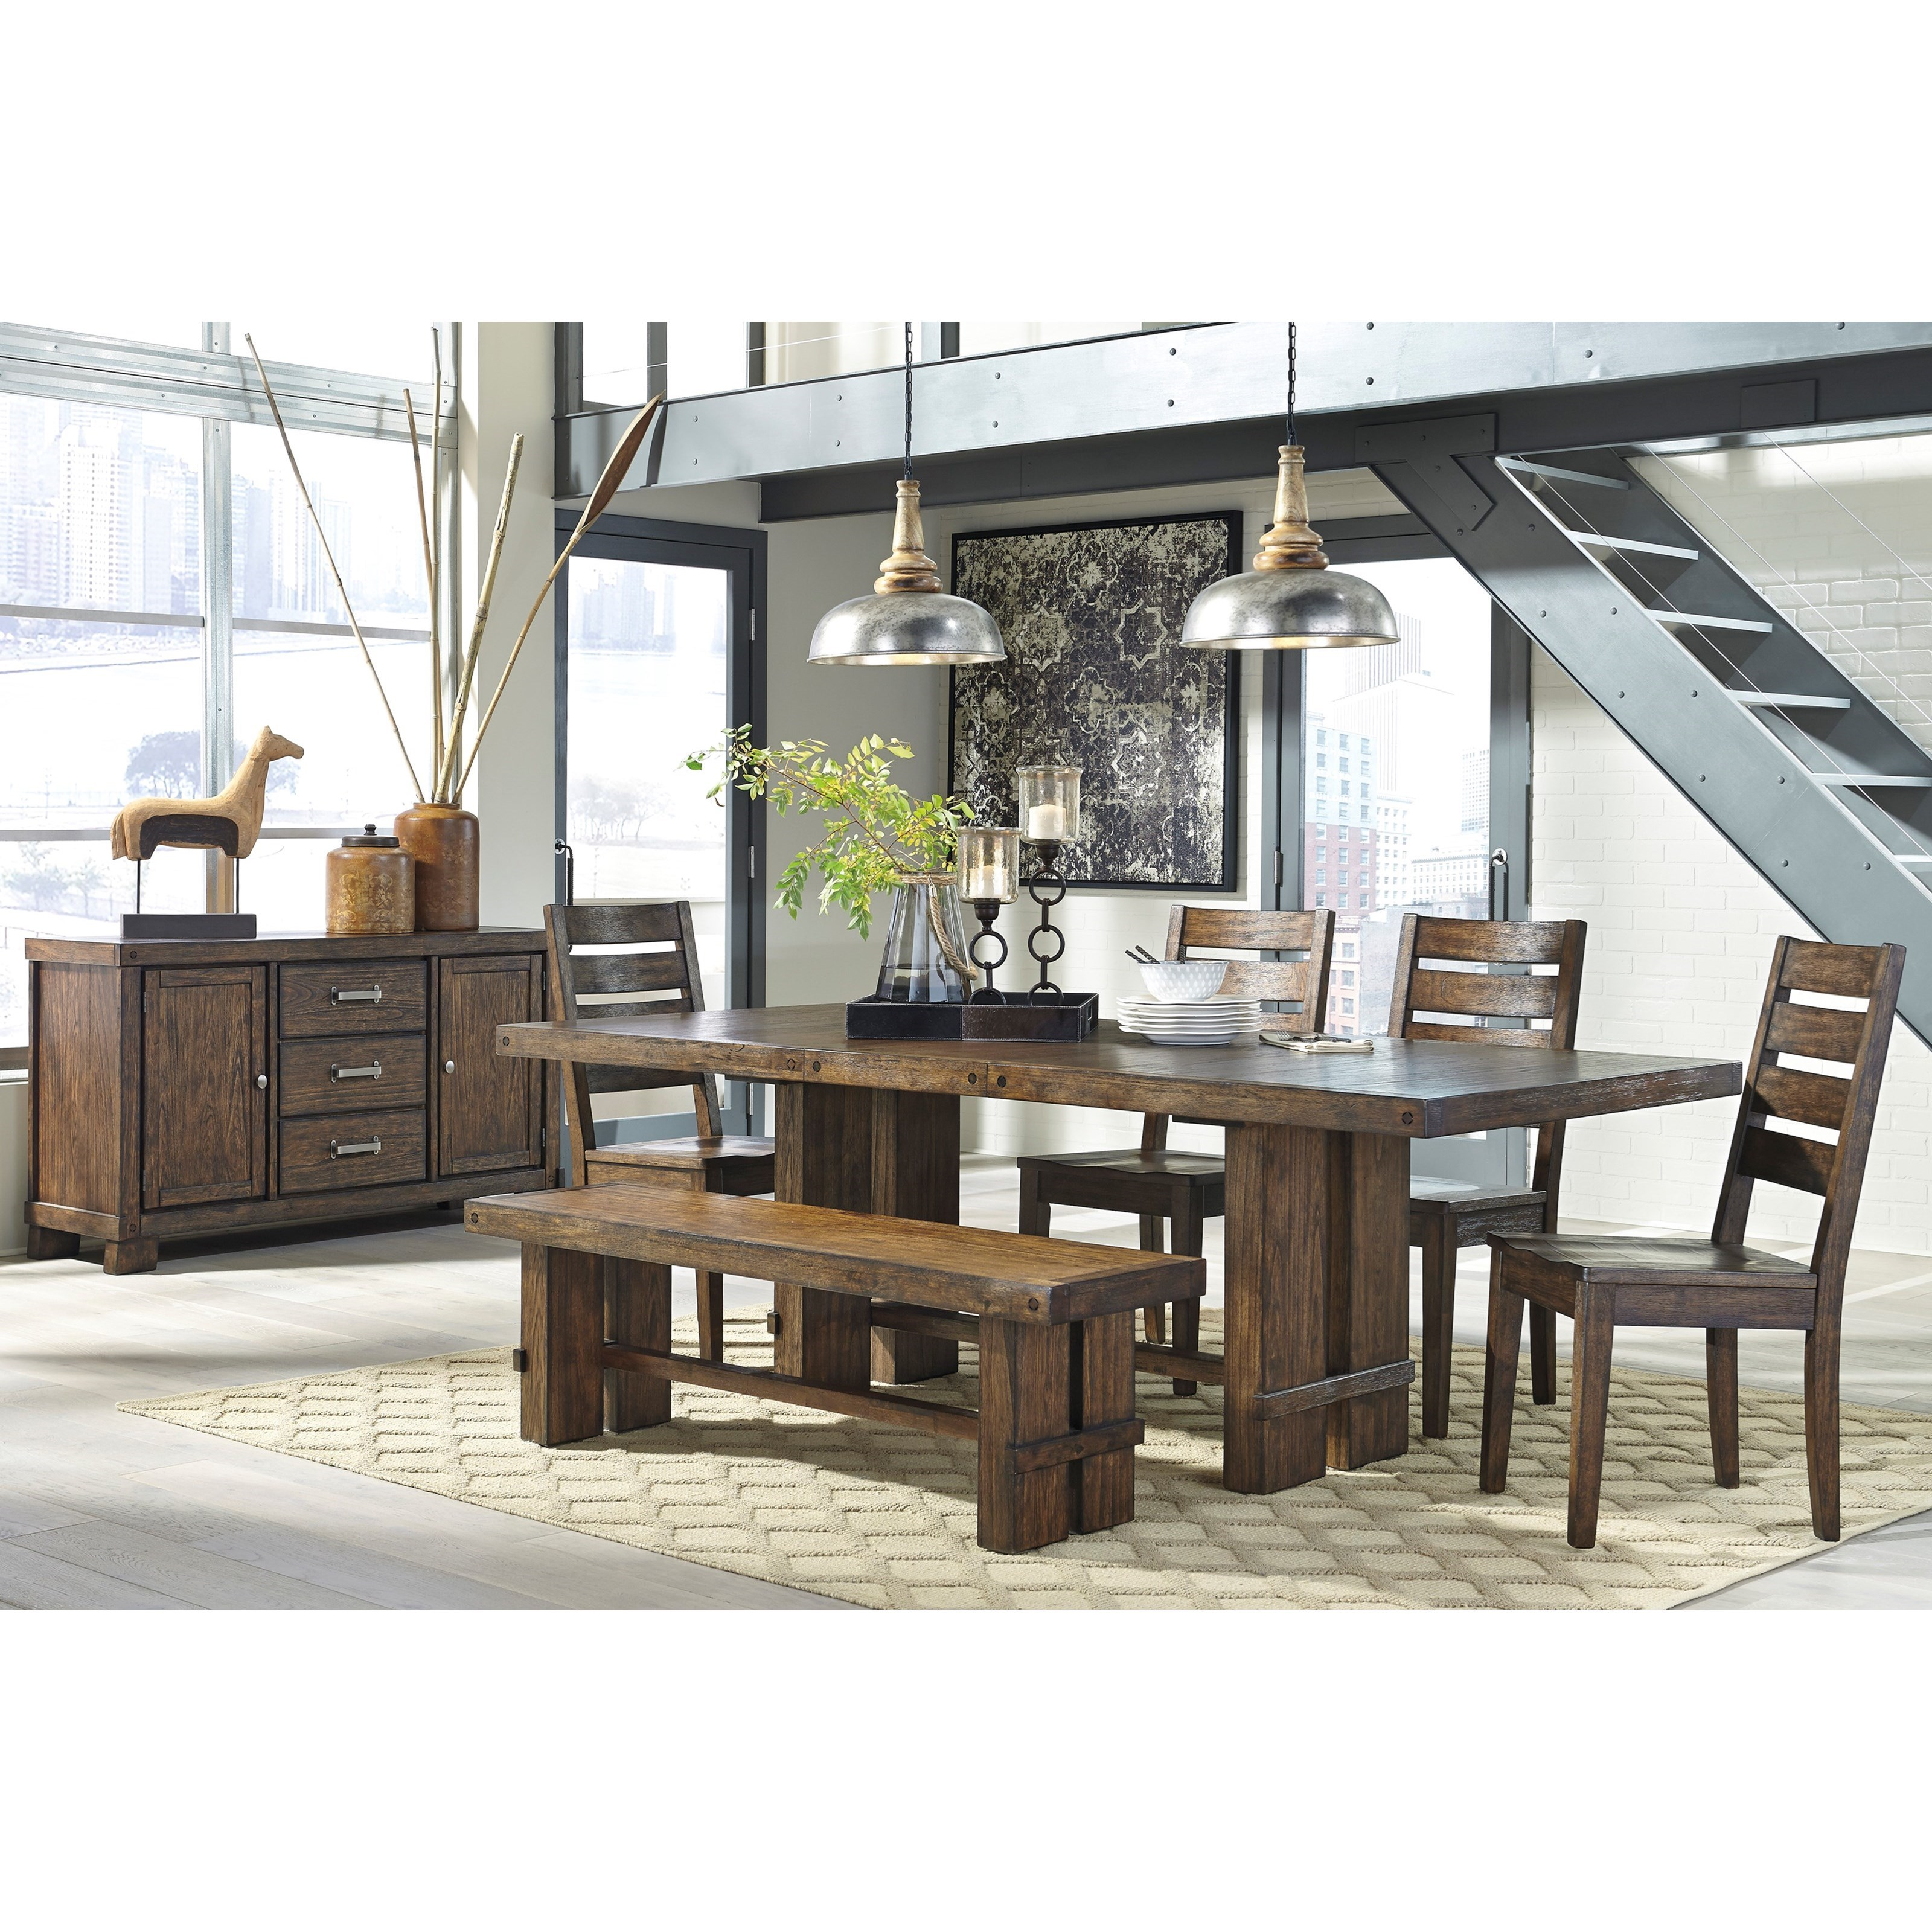 Signature Design by Ashley Leystone Casual Dining Room Group - Item Number: D614 Dining Room Group 2